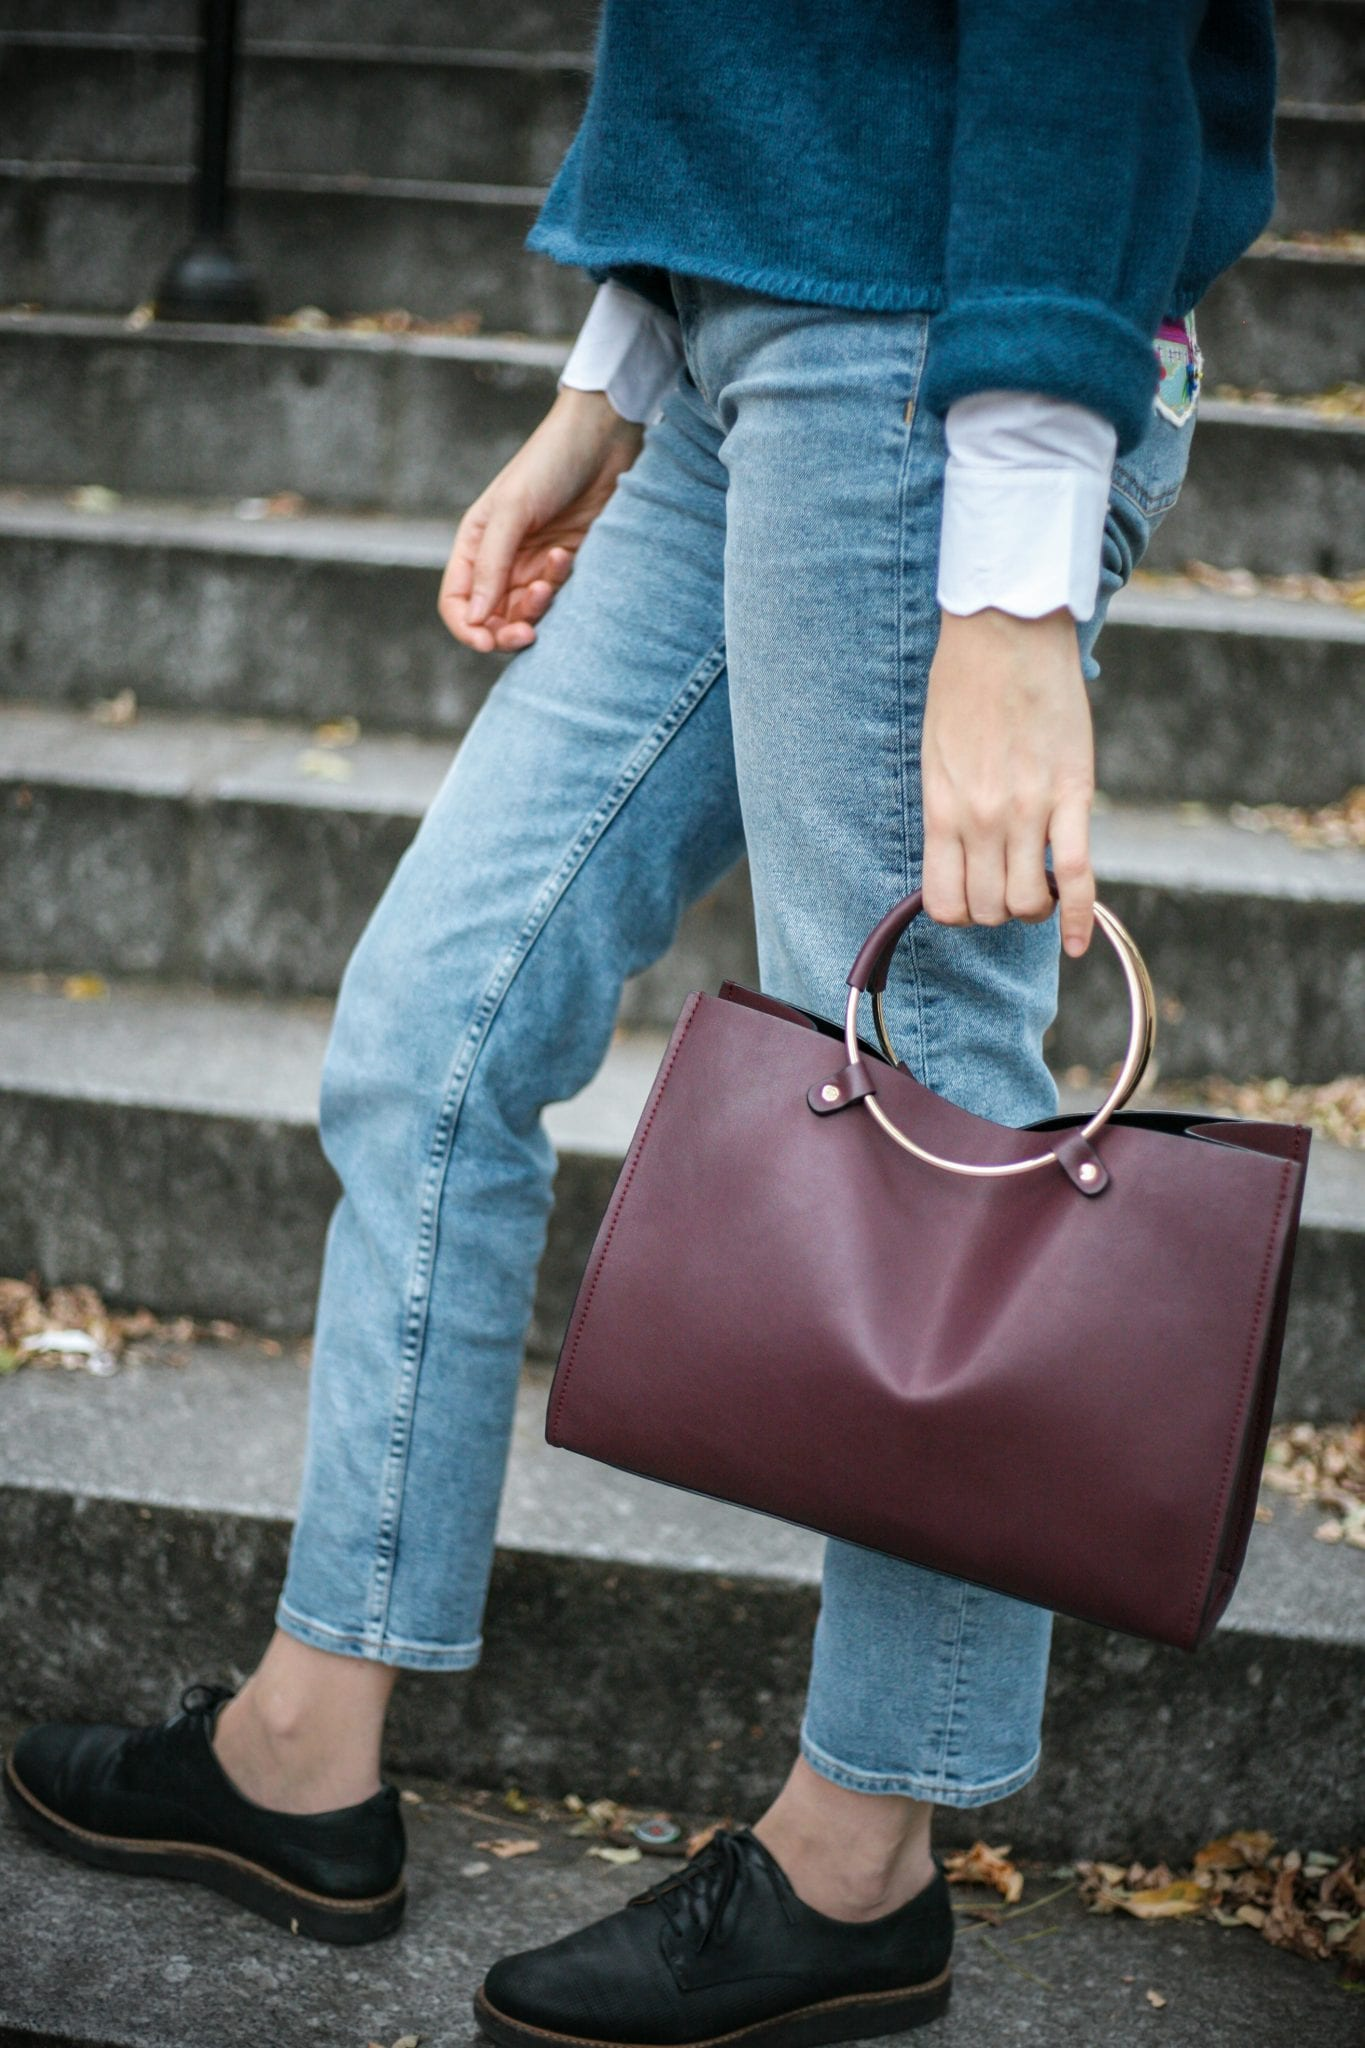 Mode éthique : un look EKYOG avec une chemise à col festonné, un pull bleu, un jean, des derbies noires et un sac bordeaux / Blog-mode-green-life-estelle-some-place-called-home